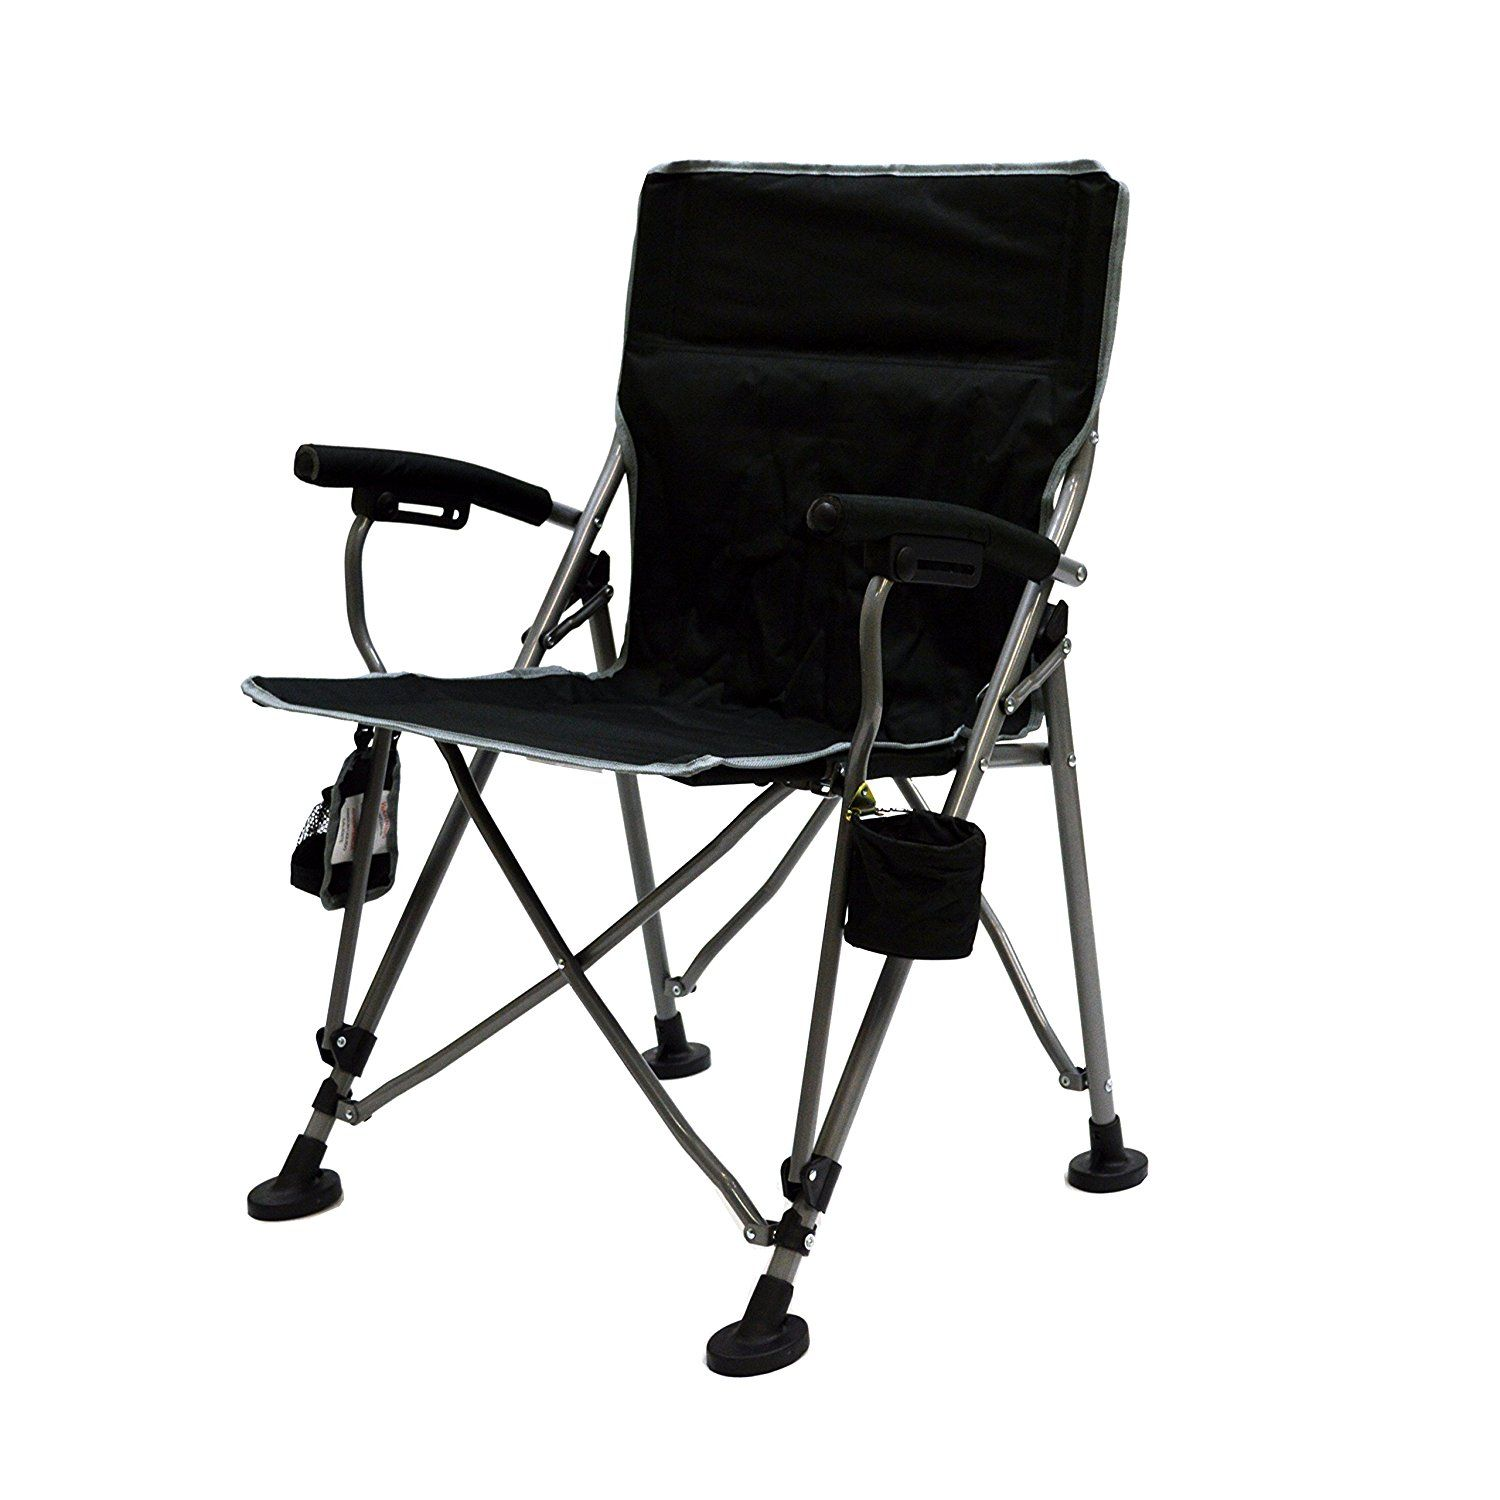 The Aviator Folding Armchair This is an Amazon Affiliate link